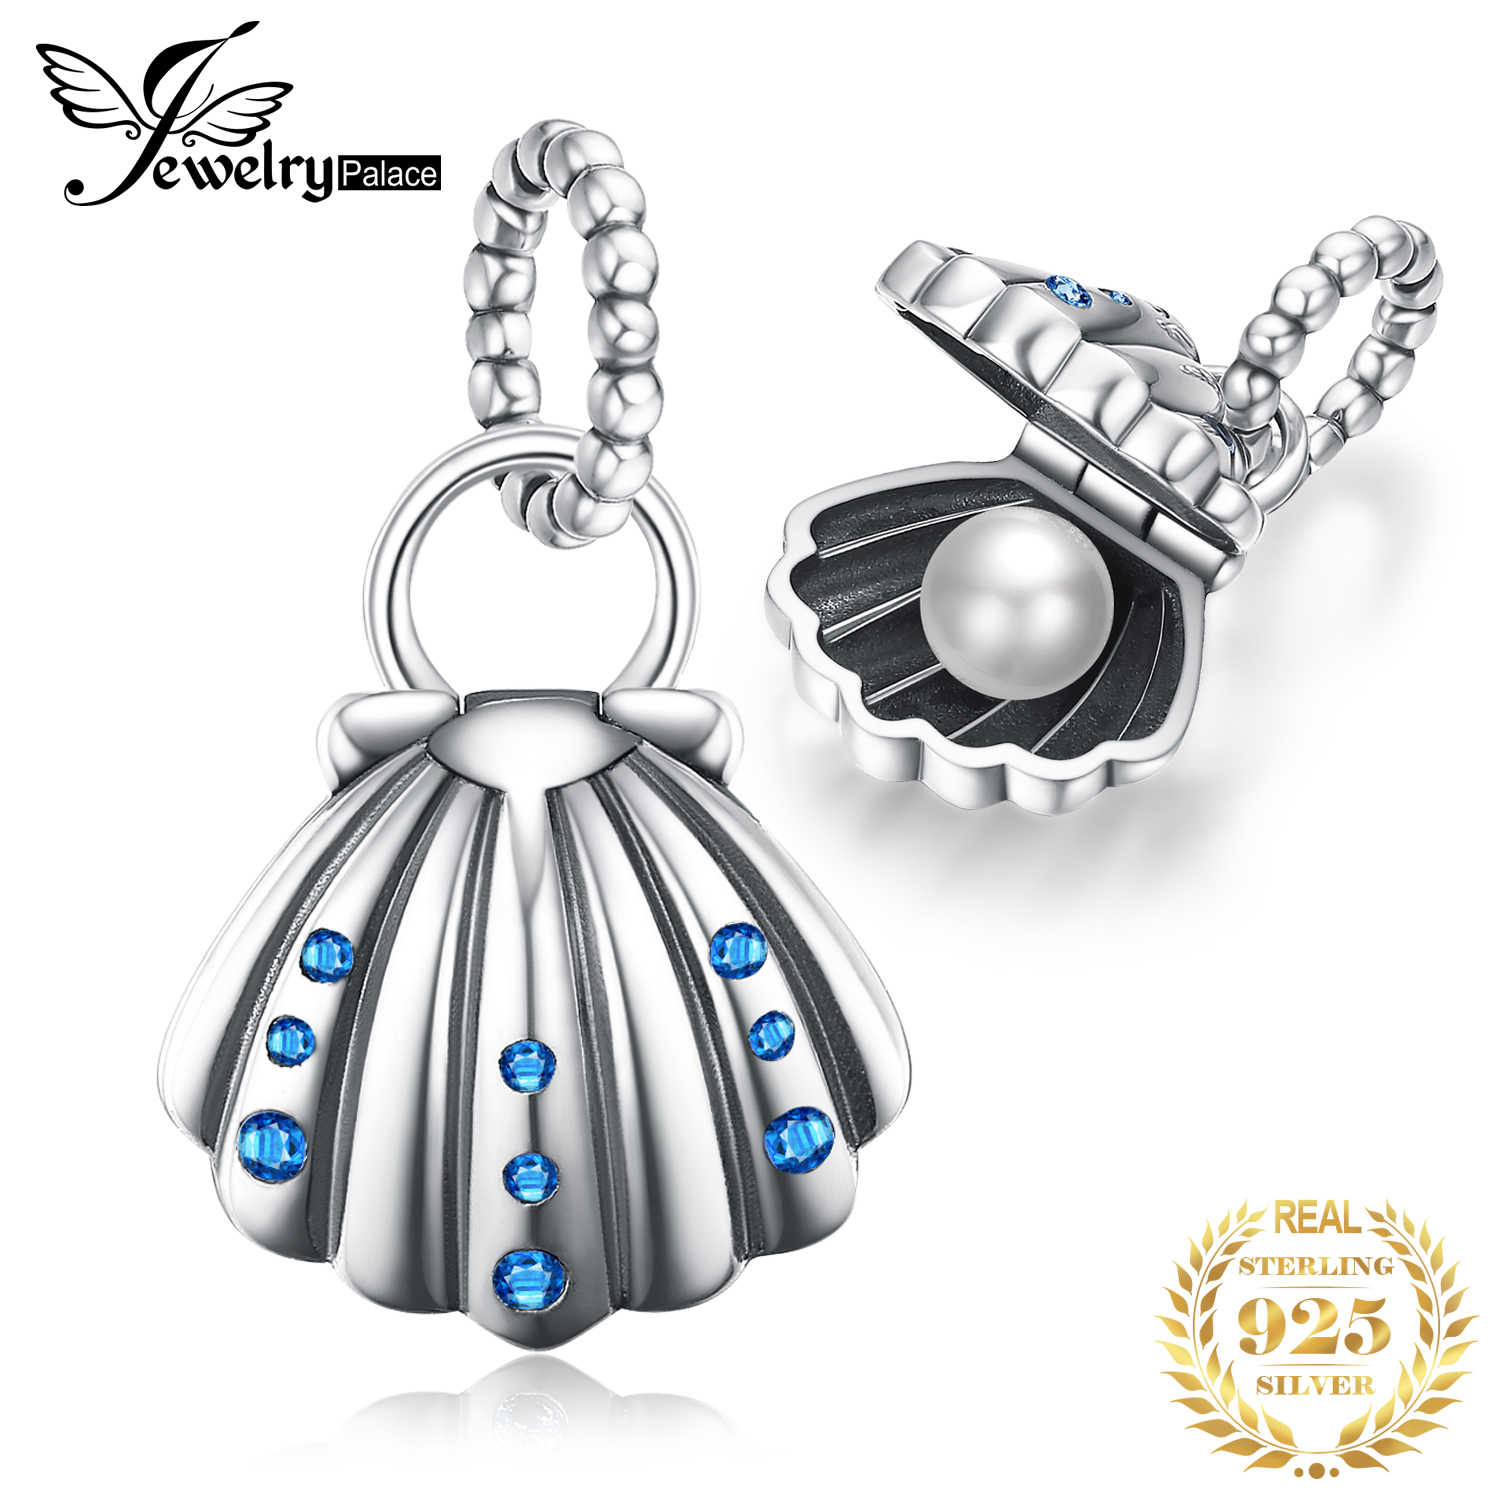 JewelryPalace Shell Pearl 925 Sterling Silver Beads Charms Silver 925 Original For Bracelet Silver 925 original Jewelry Making